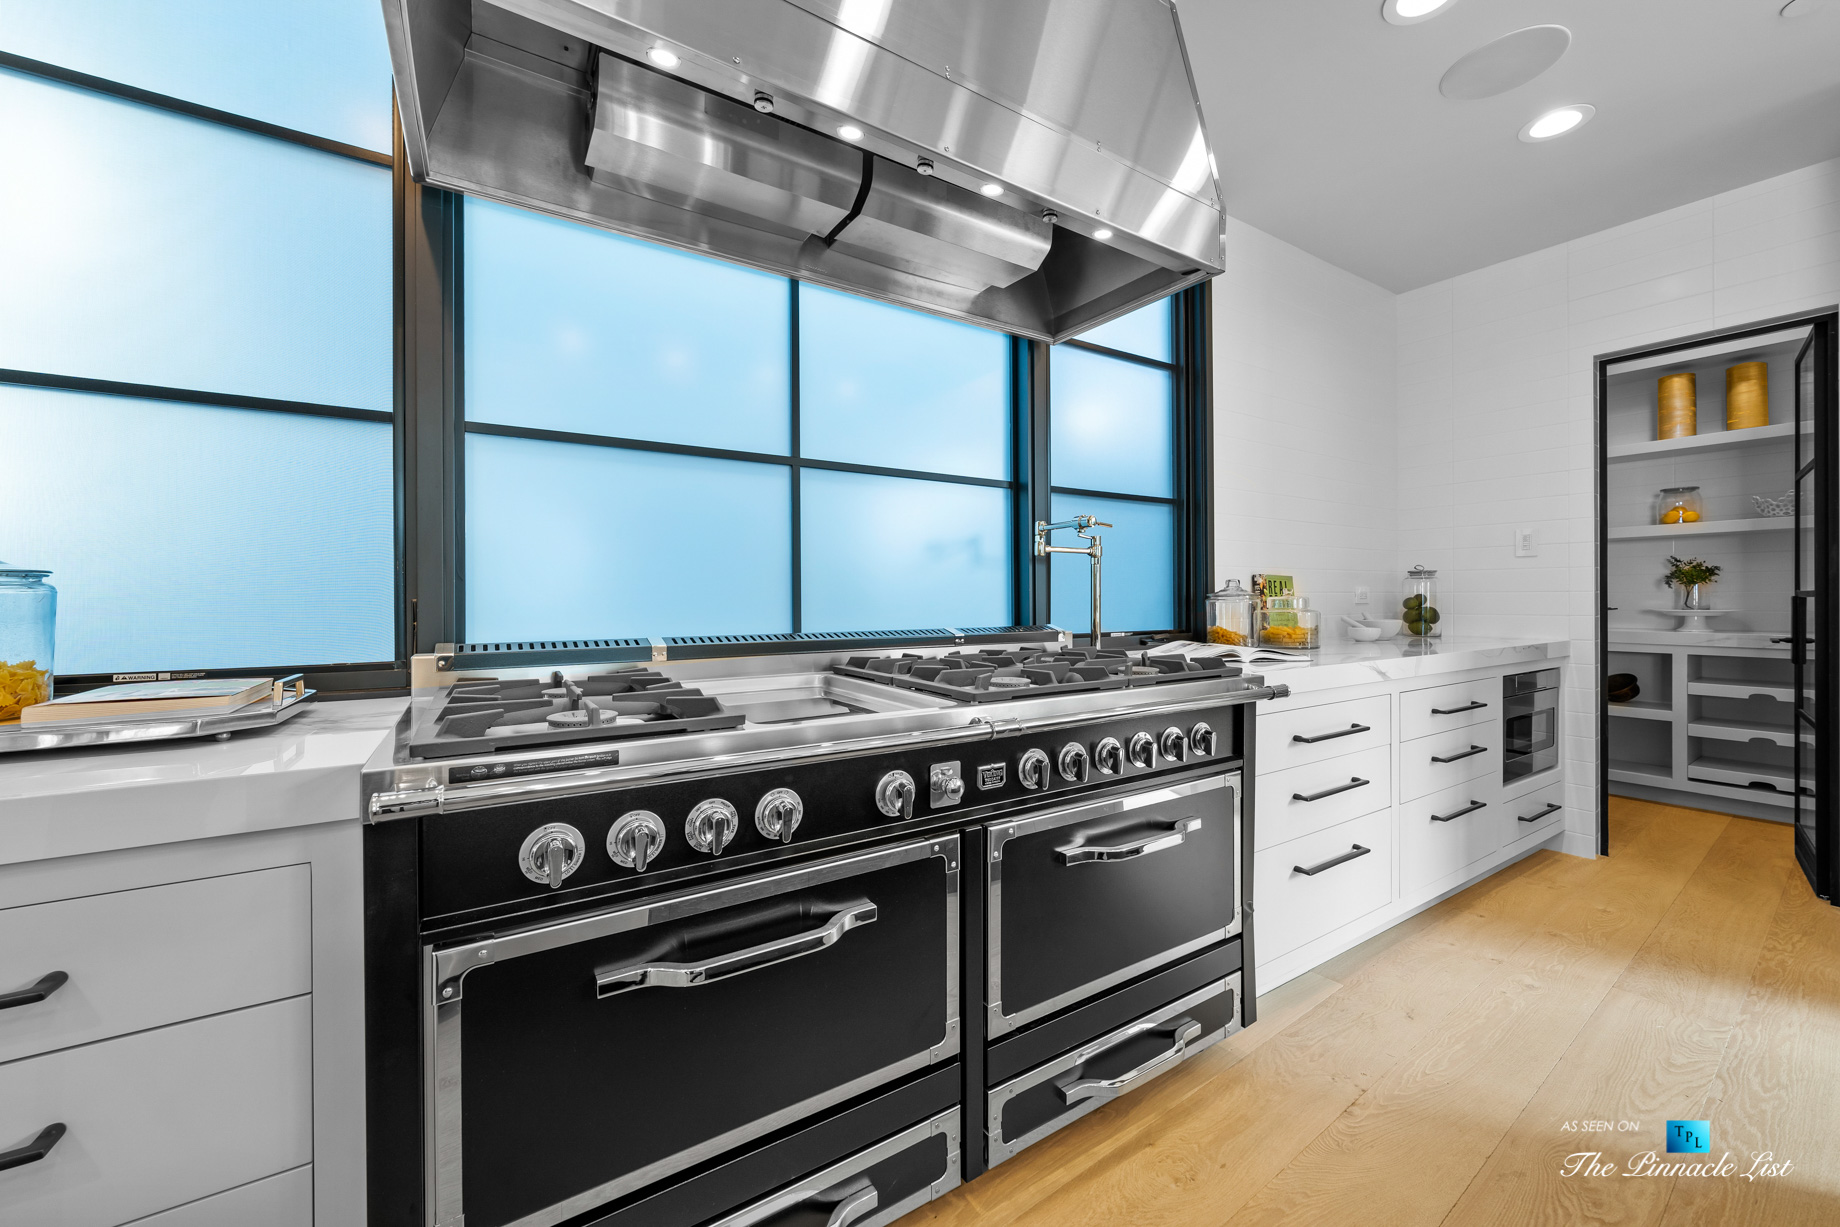 508 The Strand, Manhattan Beach, CA, USA - Kitchen Gas Stoves - Luxury Real Estate - Oceanfront Home